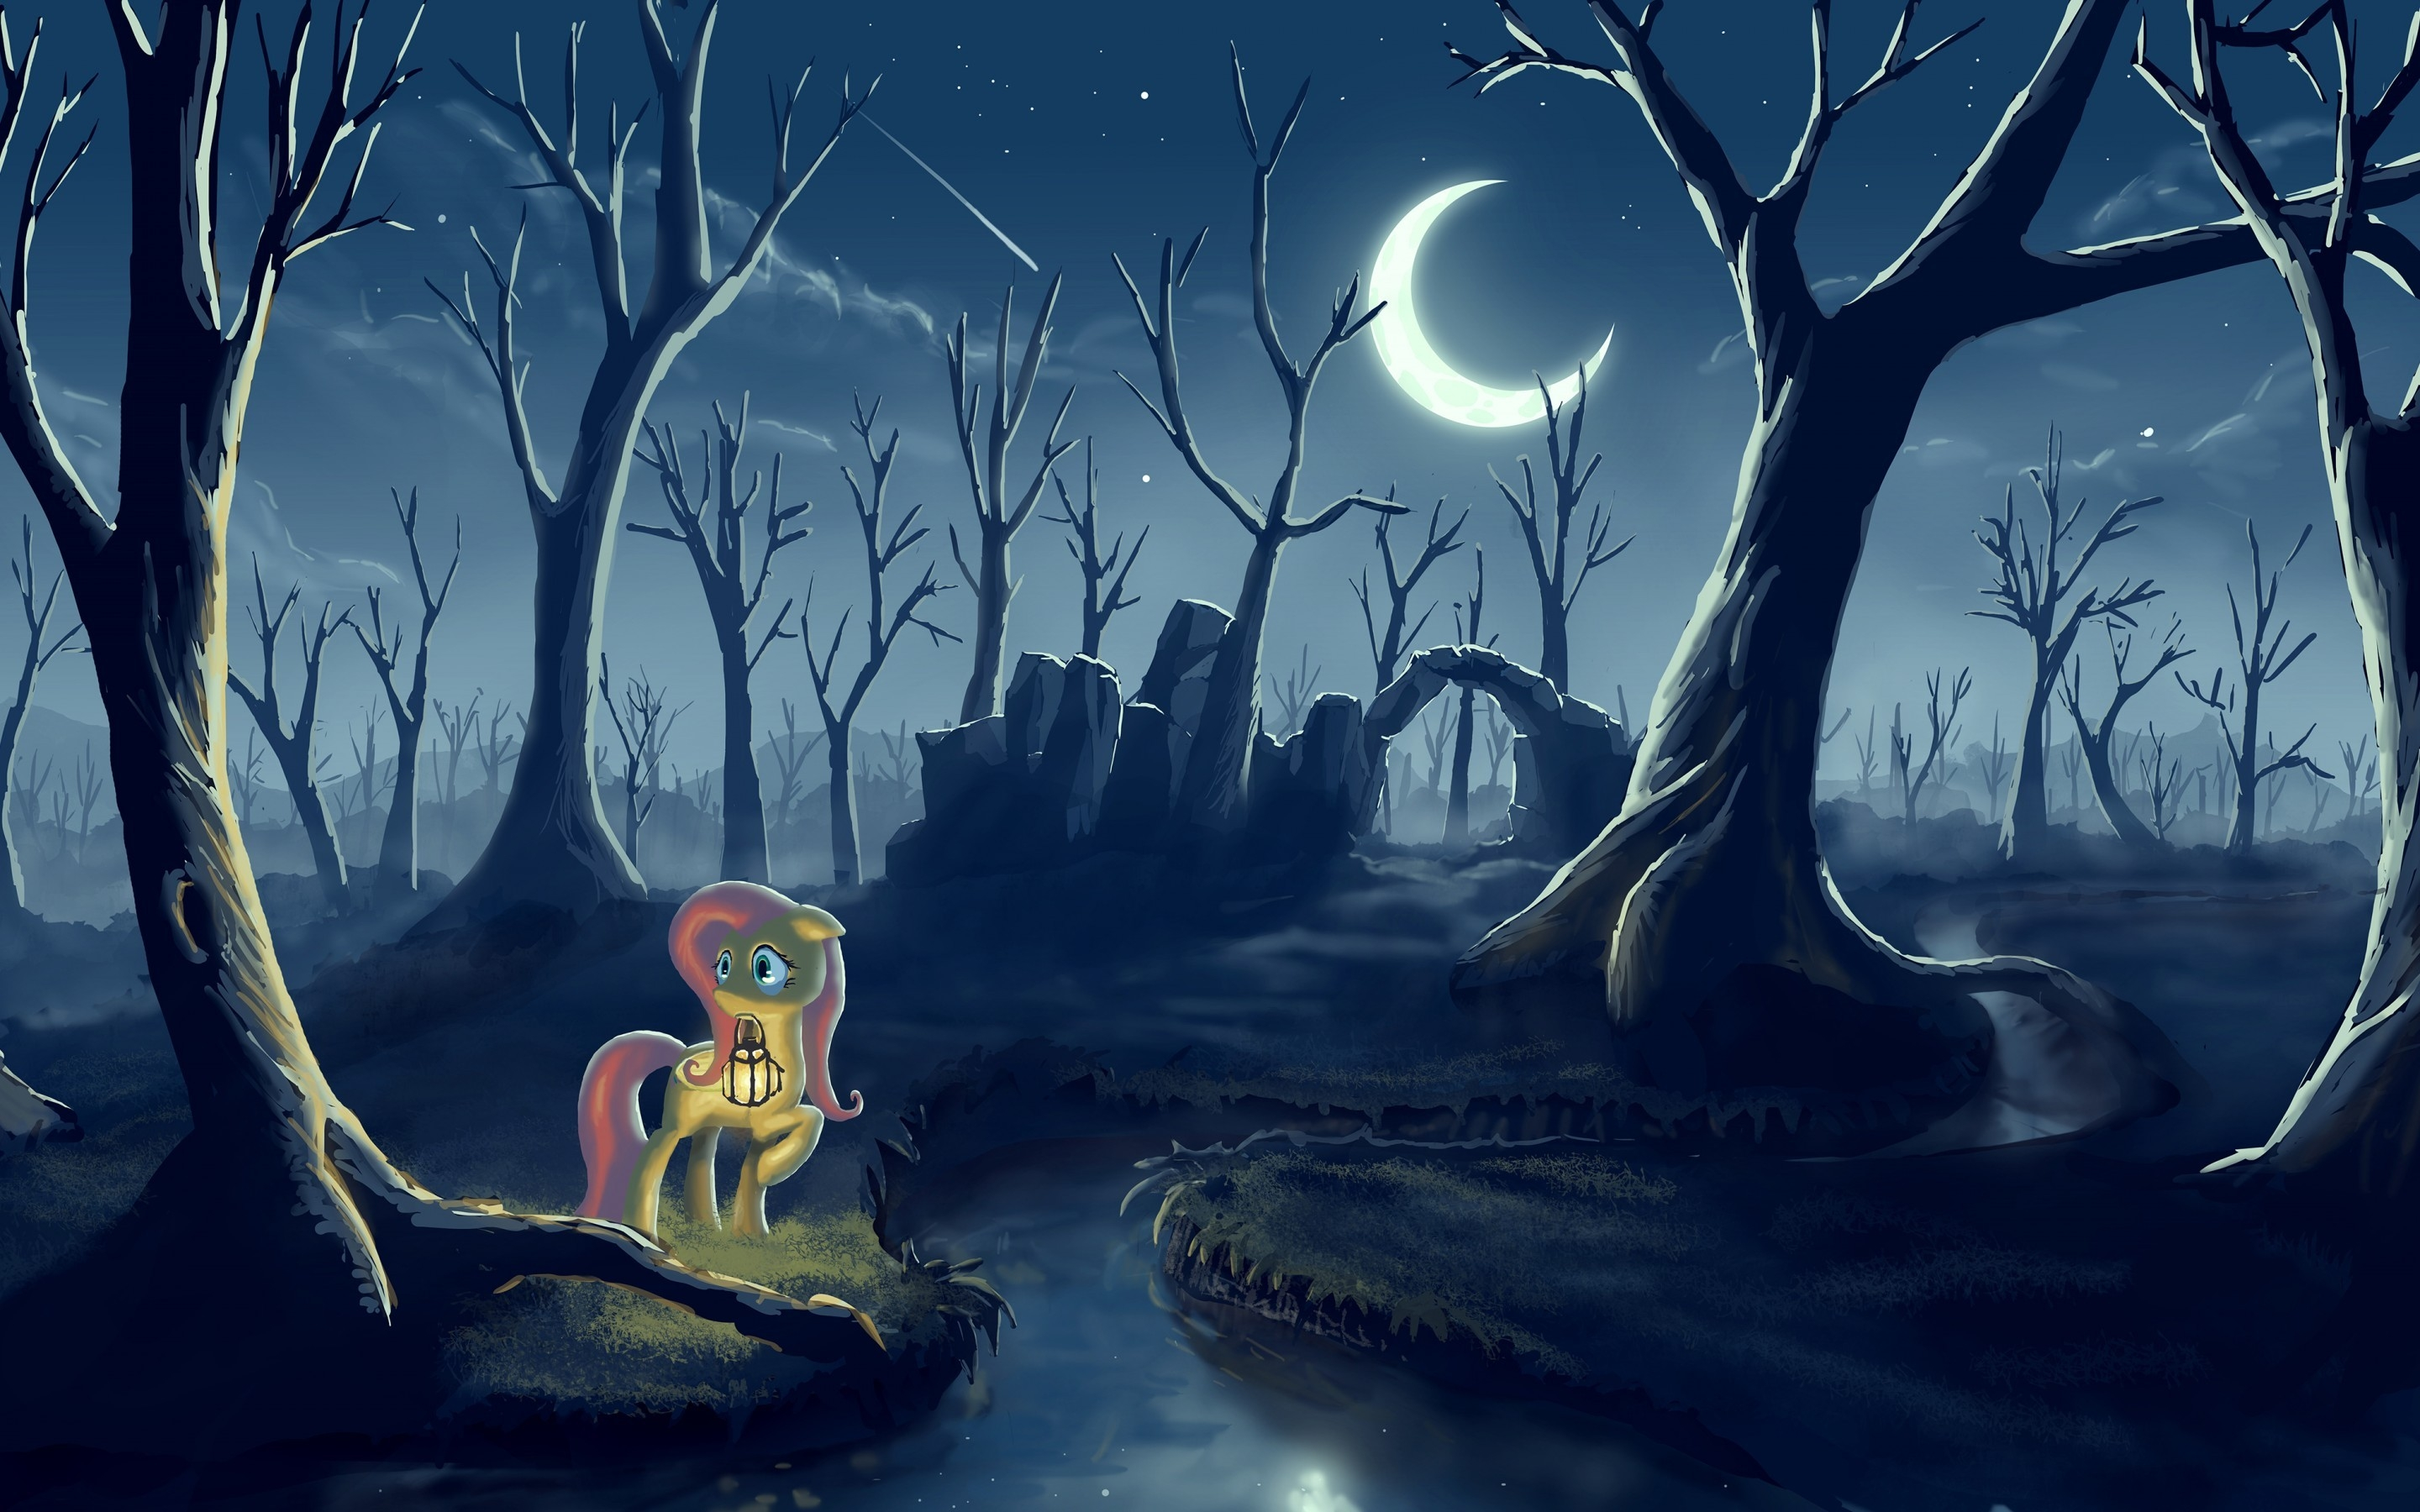 My Little Pony Poster for 2880 x 1800 Retina Display resolution